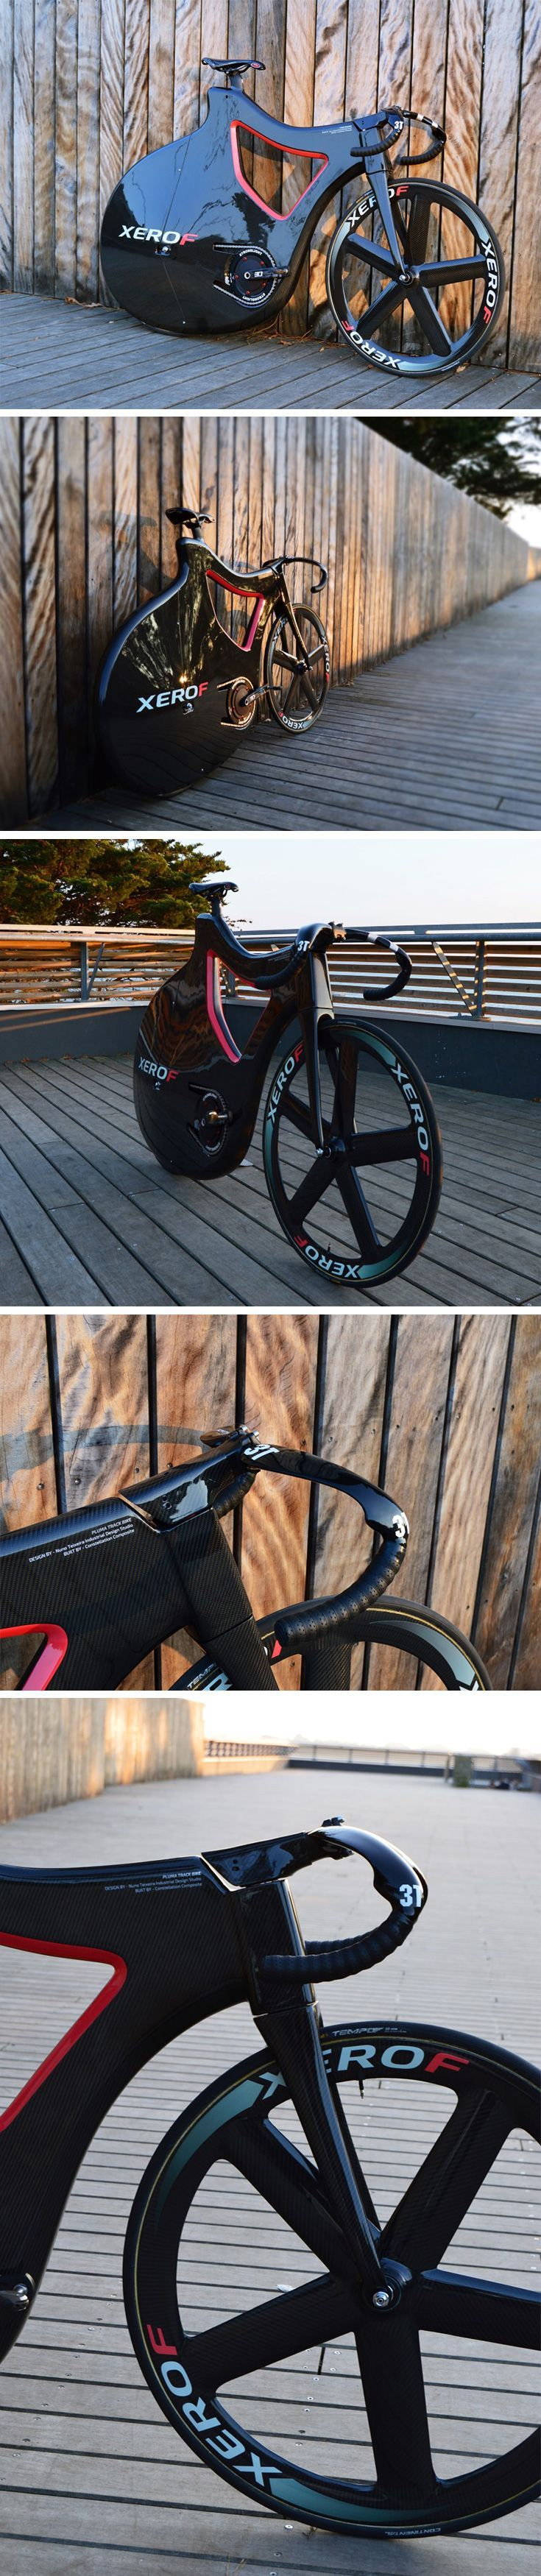 The pluma is a track bike focusing on being immensely resistant to stress force